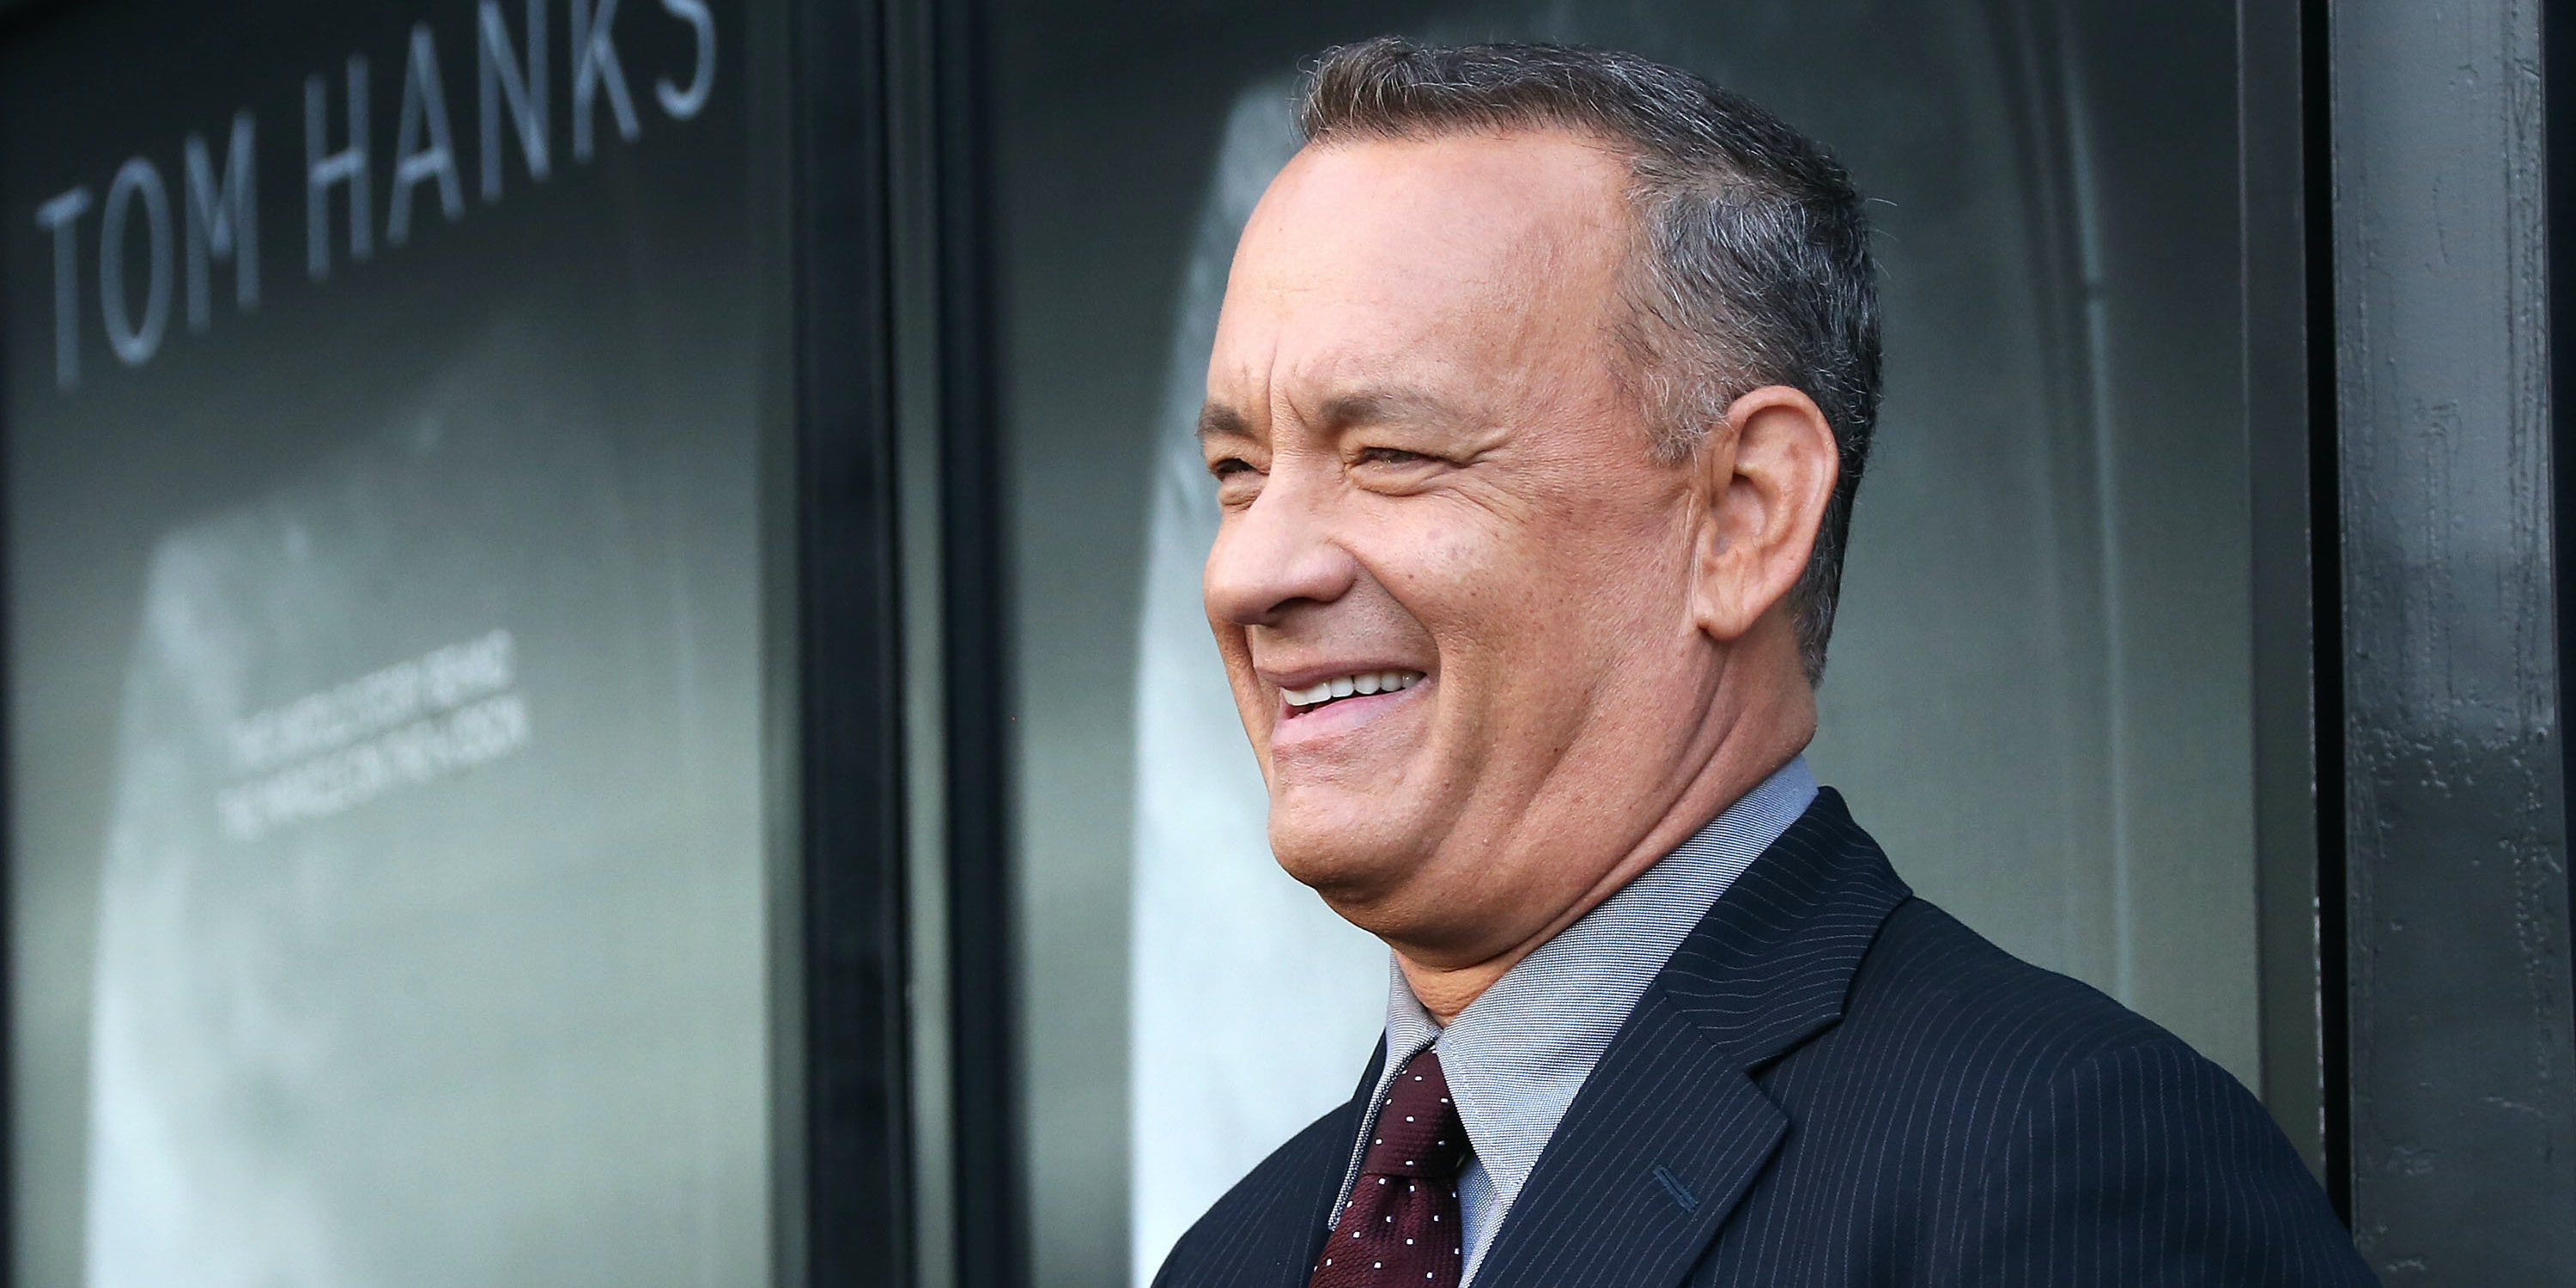 LOS ANGELES, CA - SEPTEMBER 08:  Actor Tom Hanks attends the Screening of Warner Bros. Pictures' 'Sully' at the Directors Guild Of America on September 8, 2016 in Los Angeles, California.  (Photo by Frederick M. Brown/Getty Images)